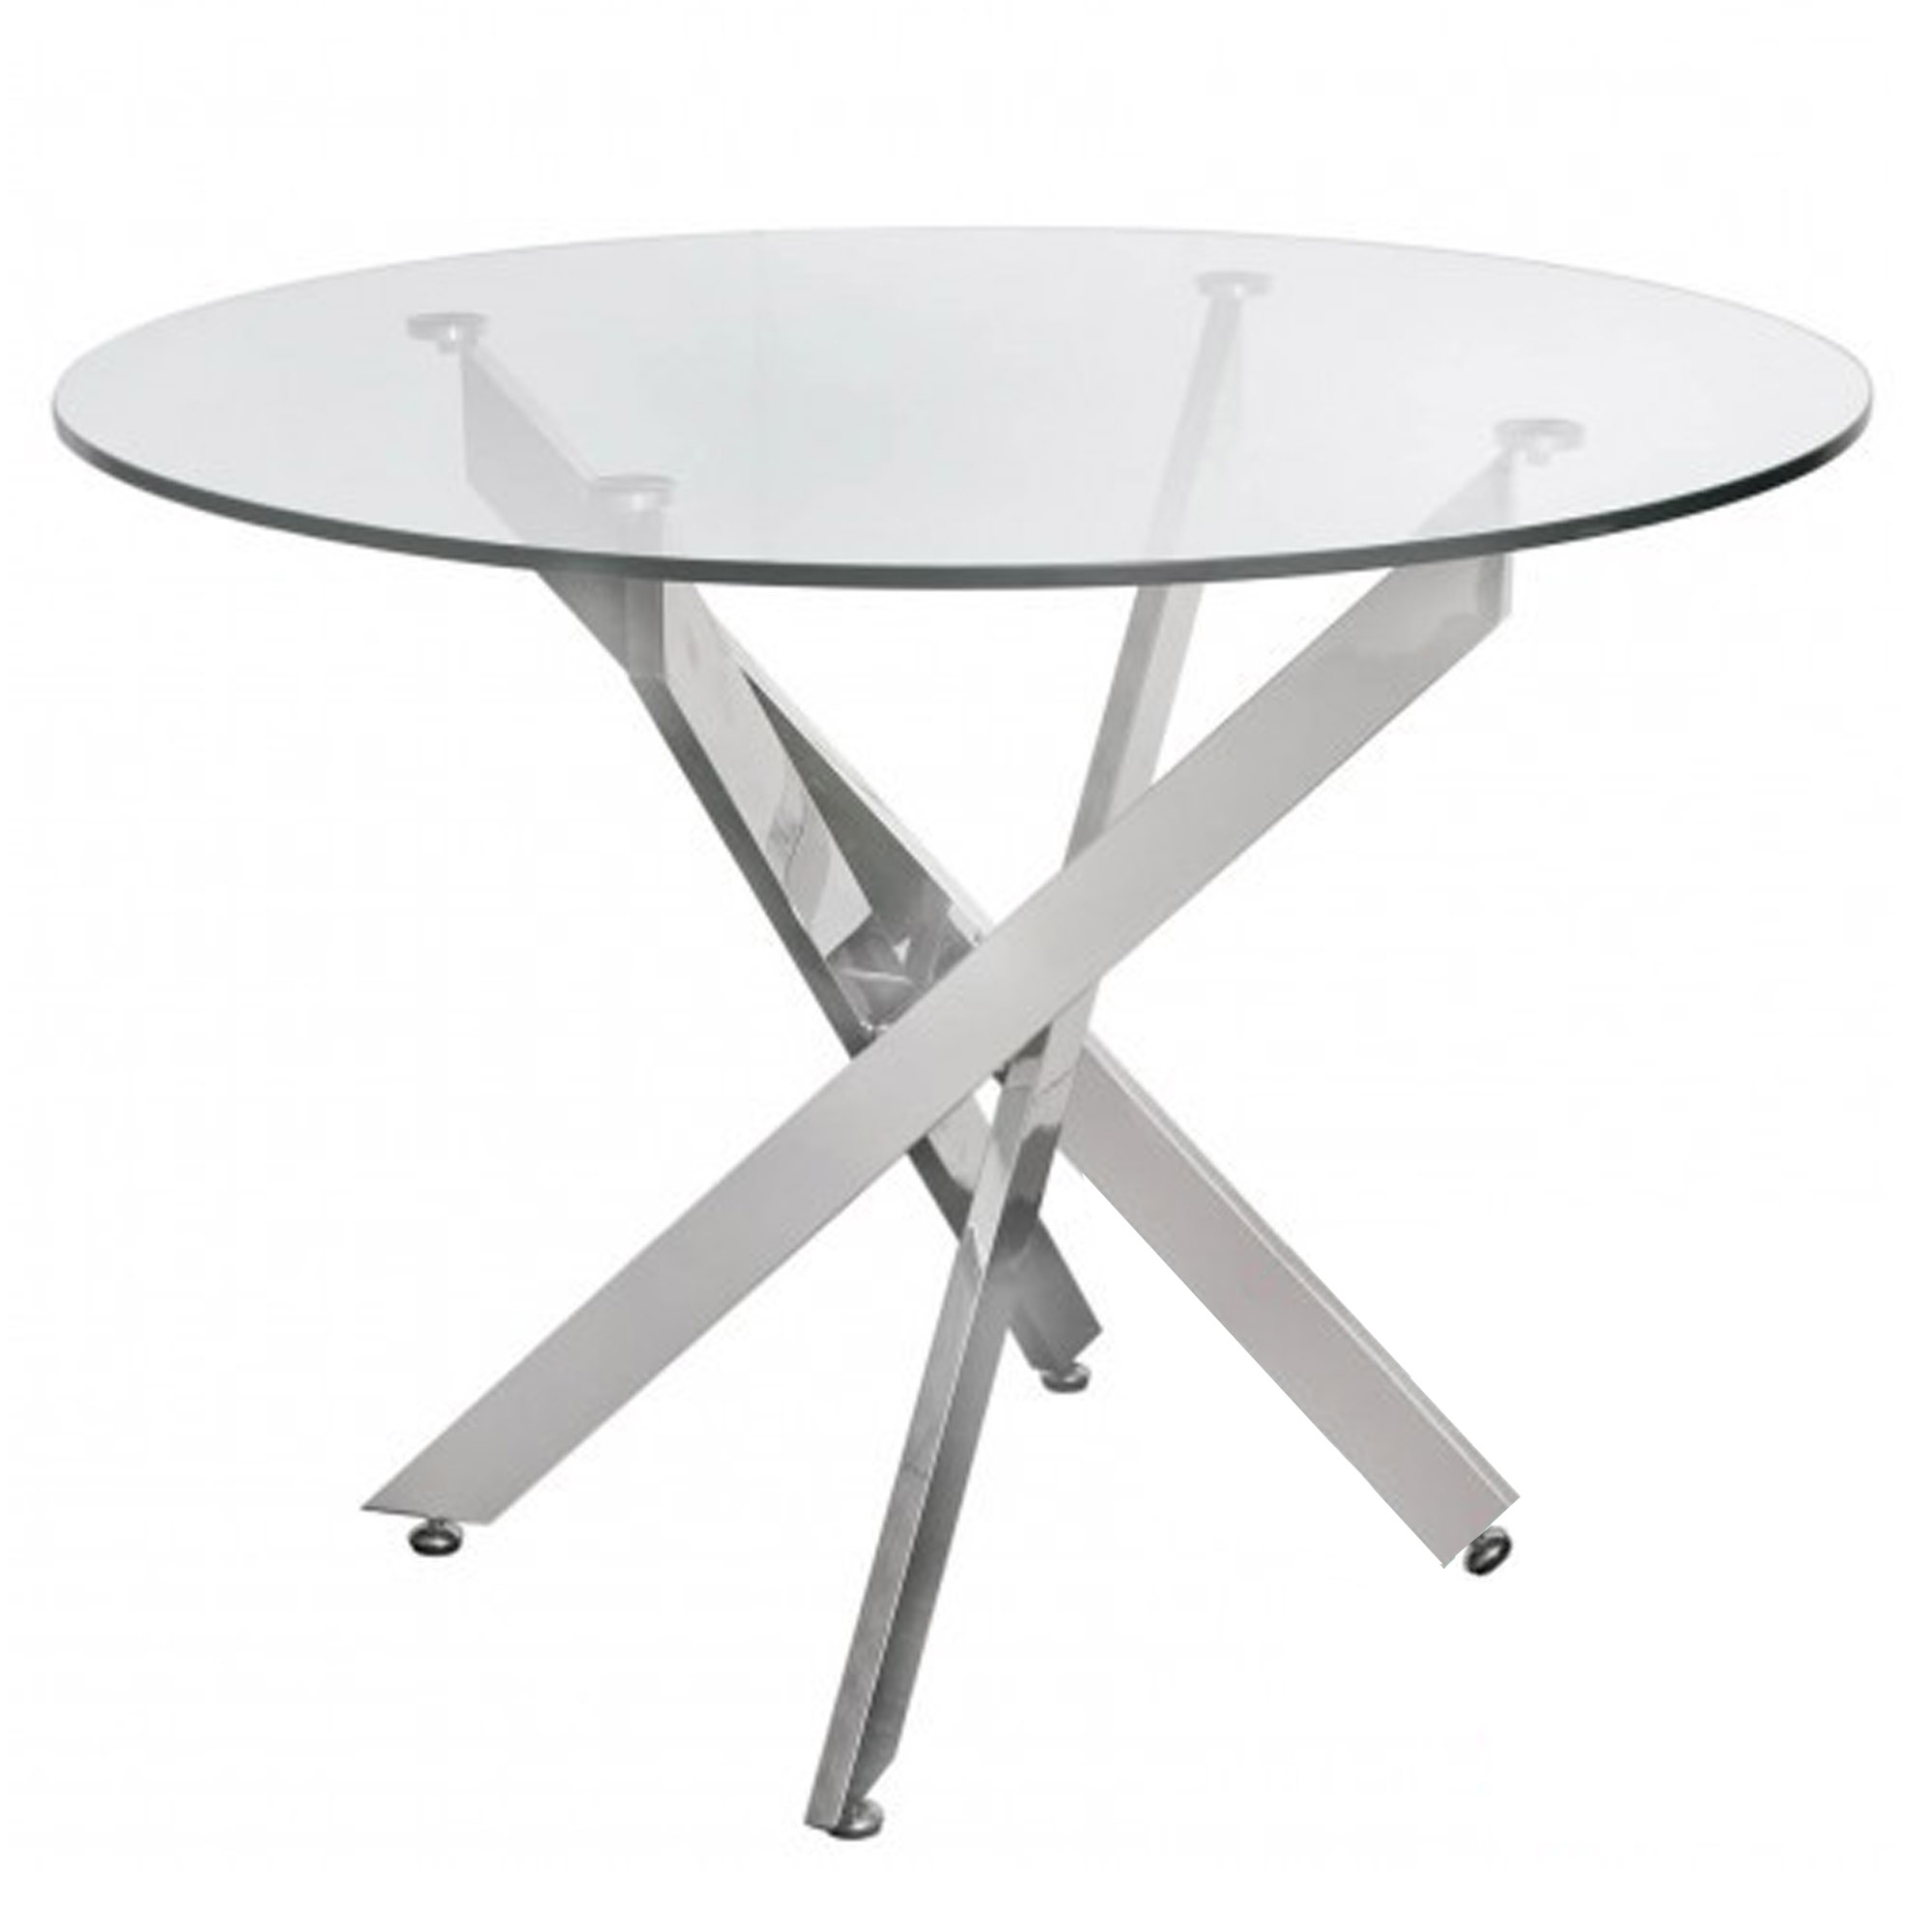 Medium Dining Tables Throughout Preferred Prato Medium Round Glass Dining Table (View 19 of 25)